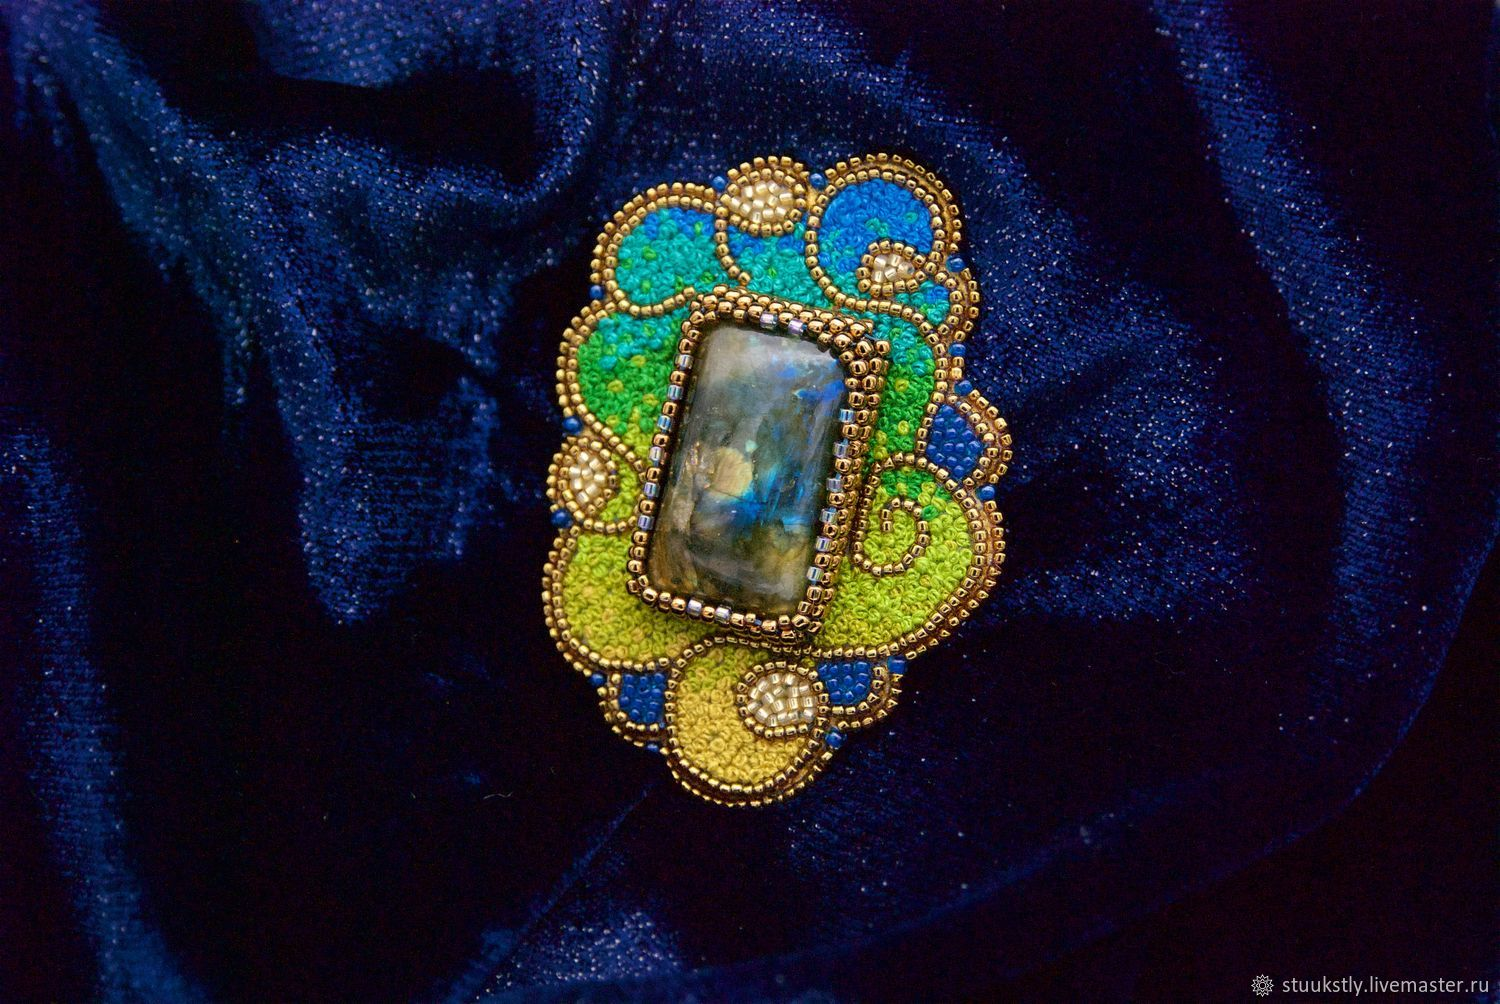 Brooch with labradorite bead and thread embroidered, Brooches, Moscow,  Фото №1